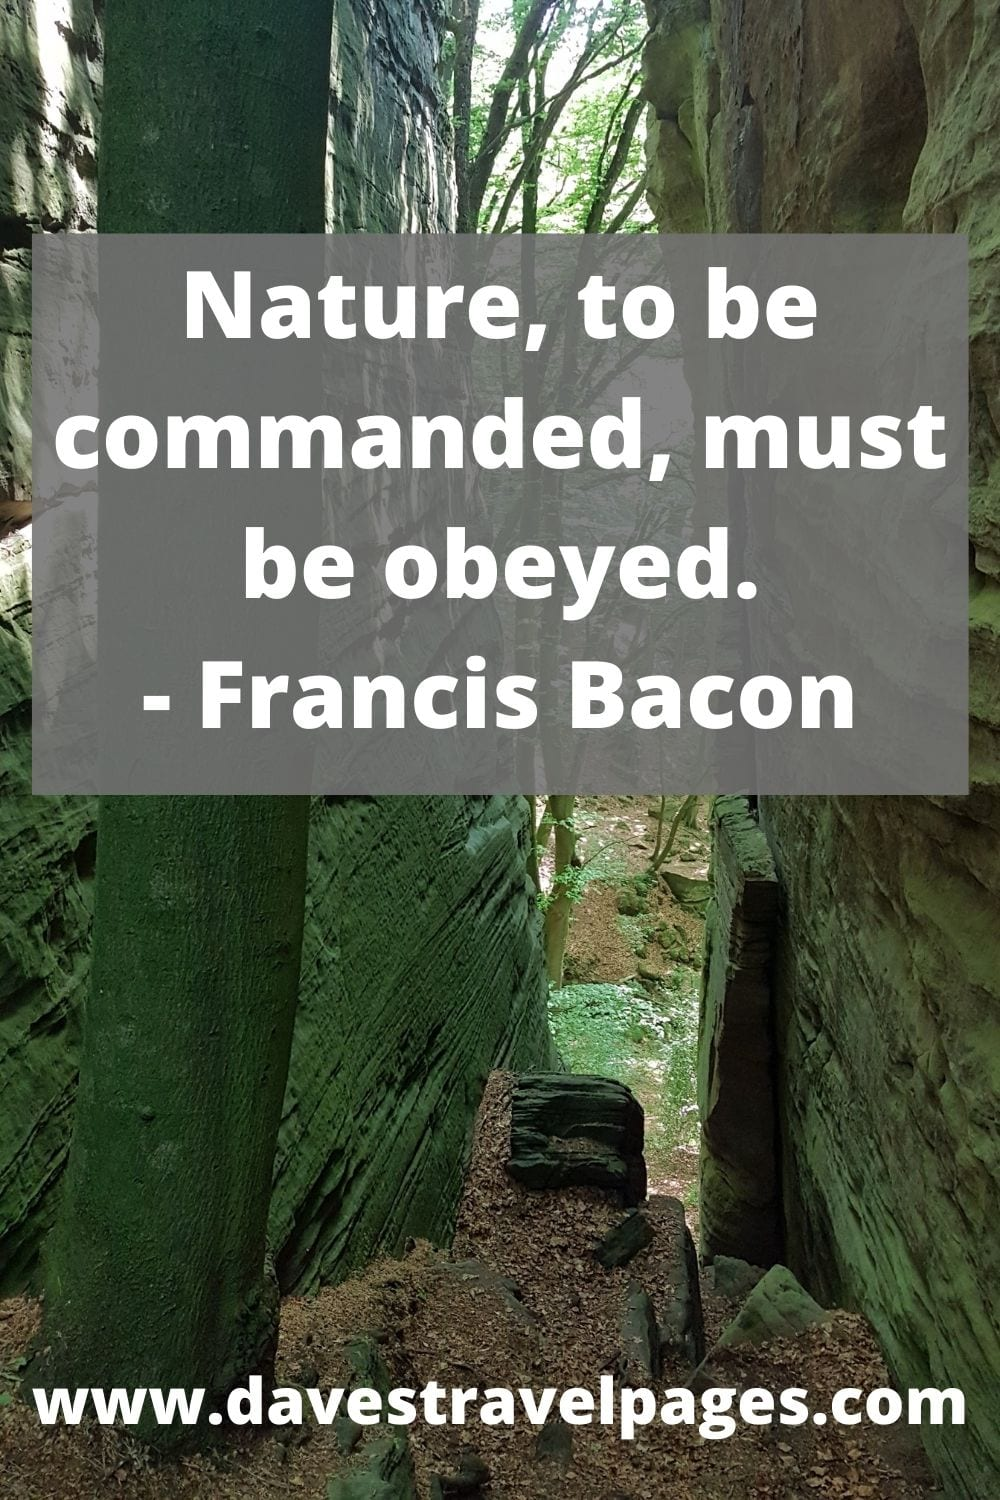 Nature, to be commanded, must be obeyed - Francis Bacon quote on nature